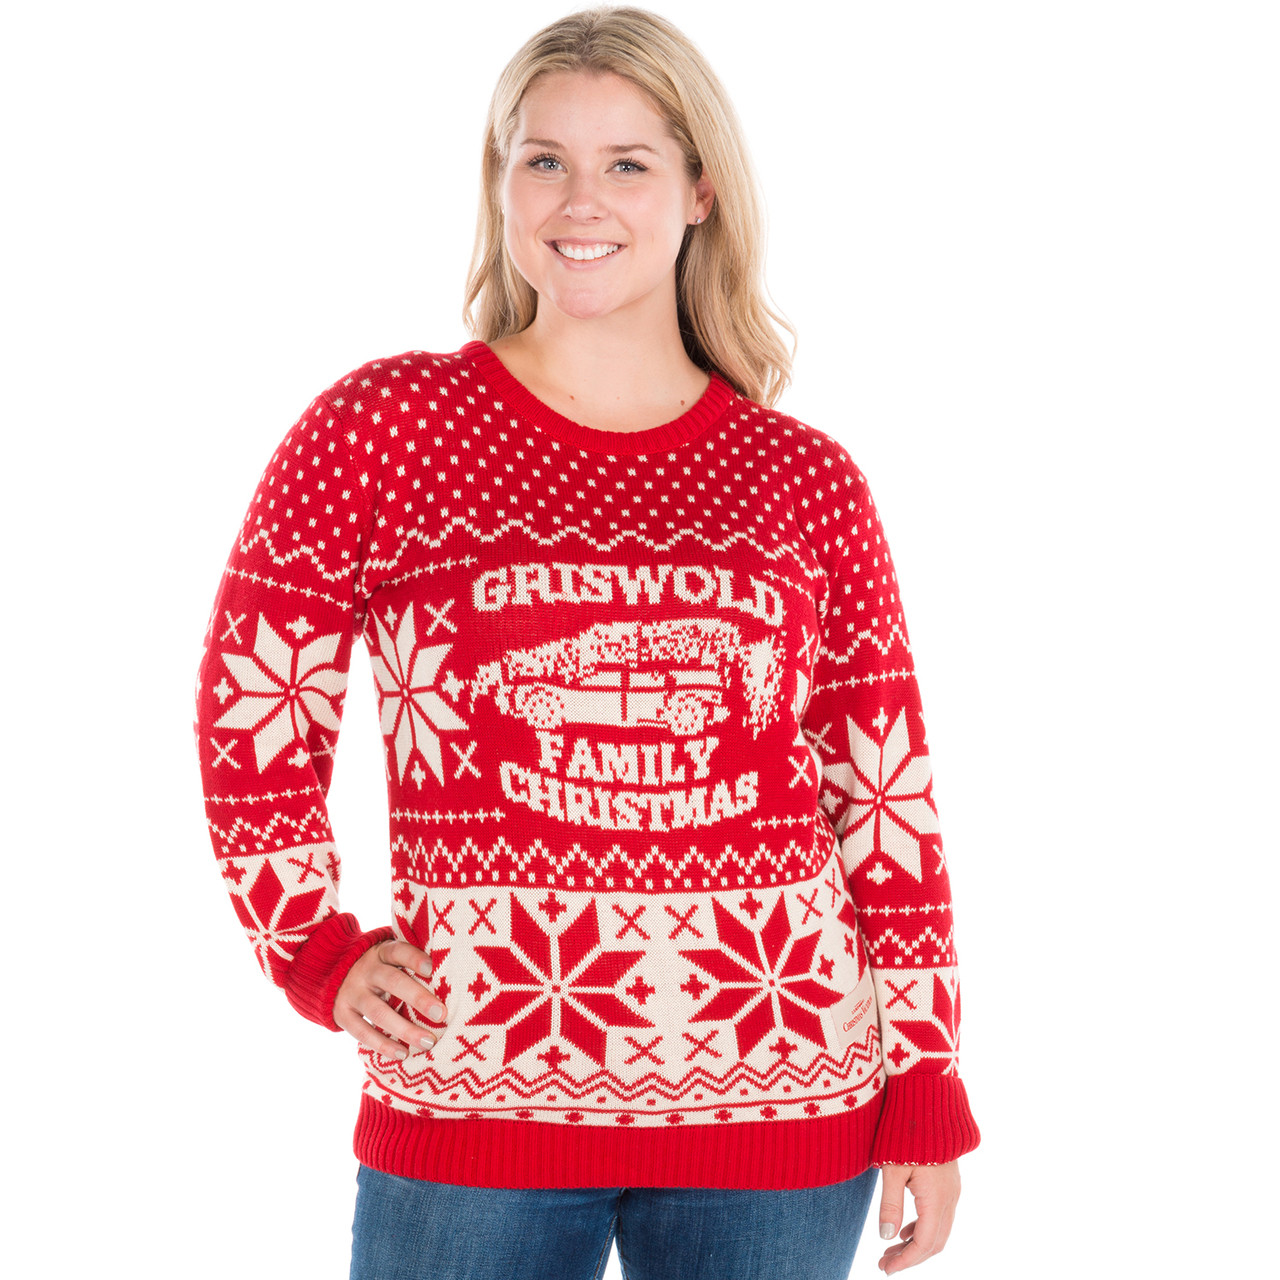 Christmas sweaters for family